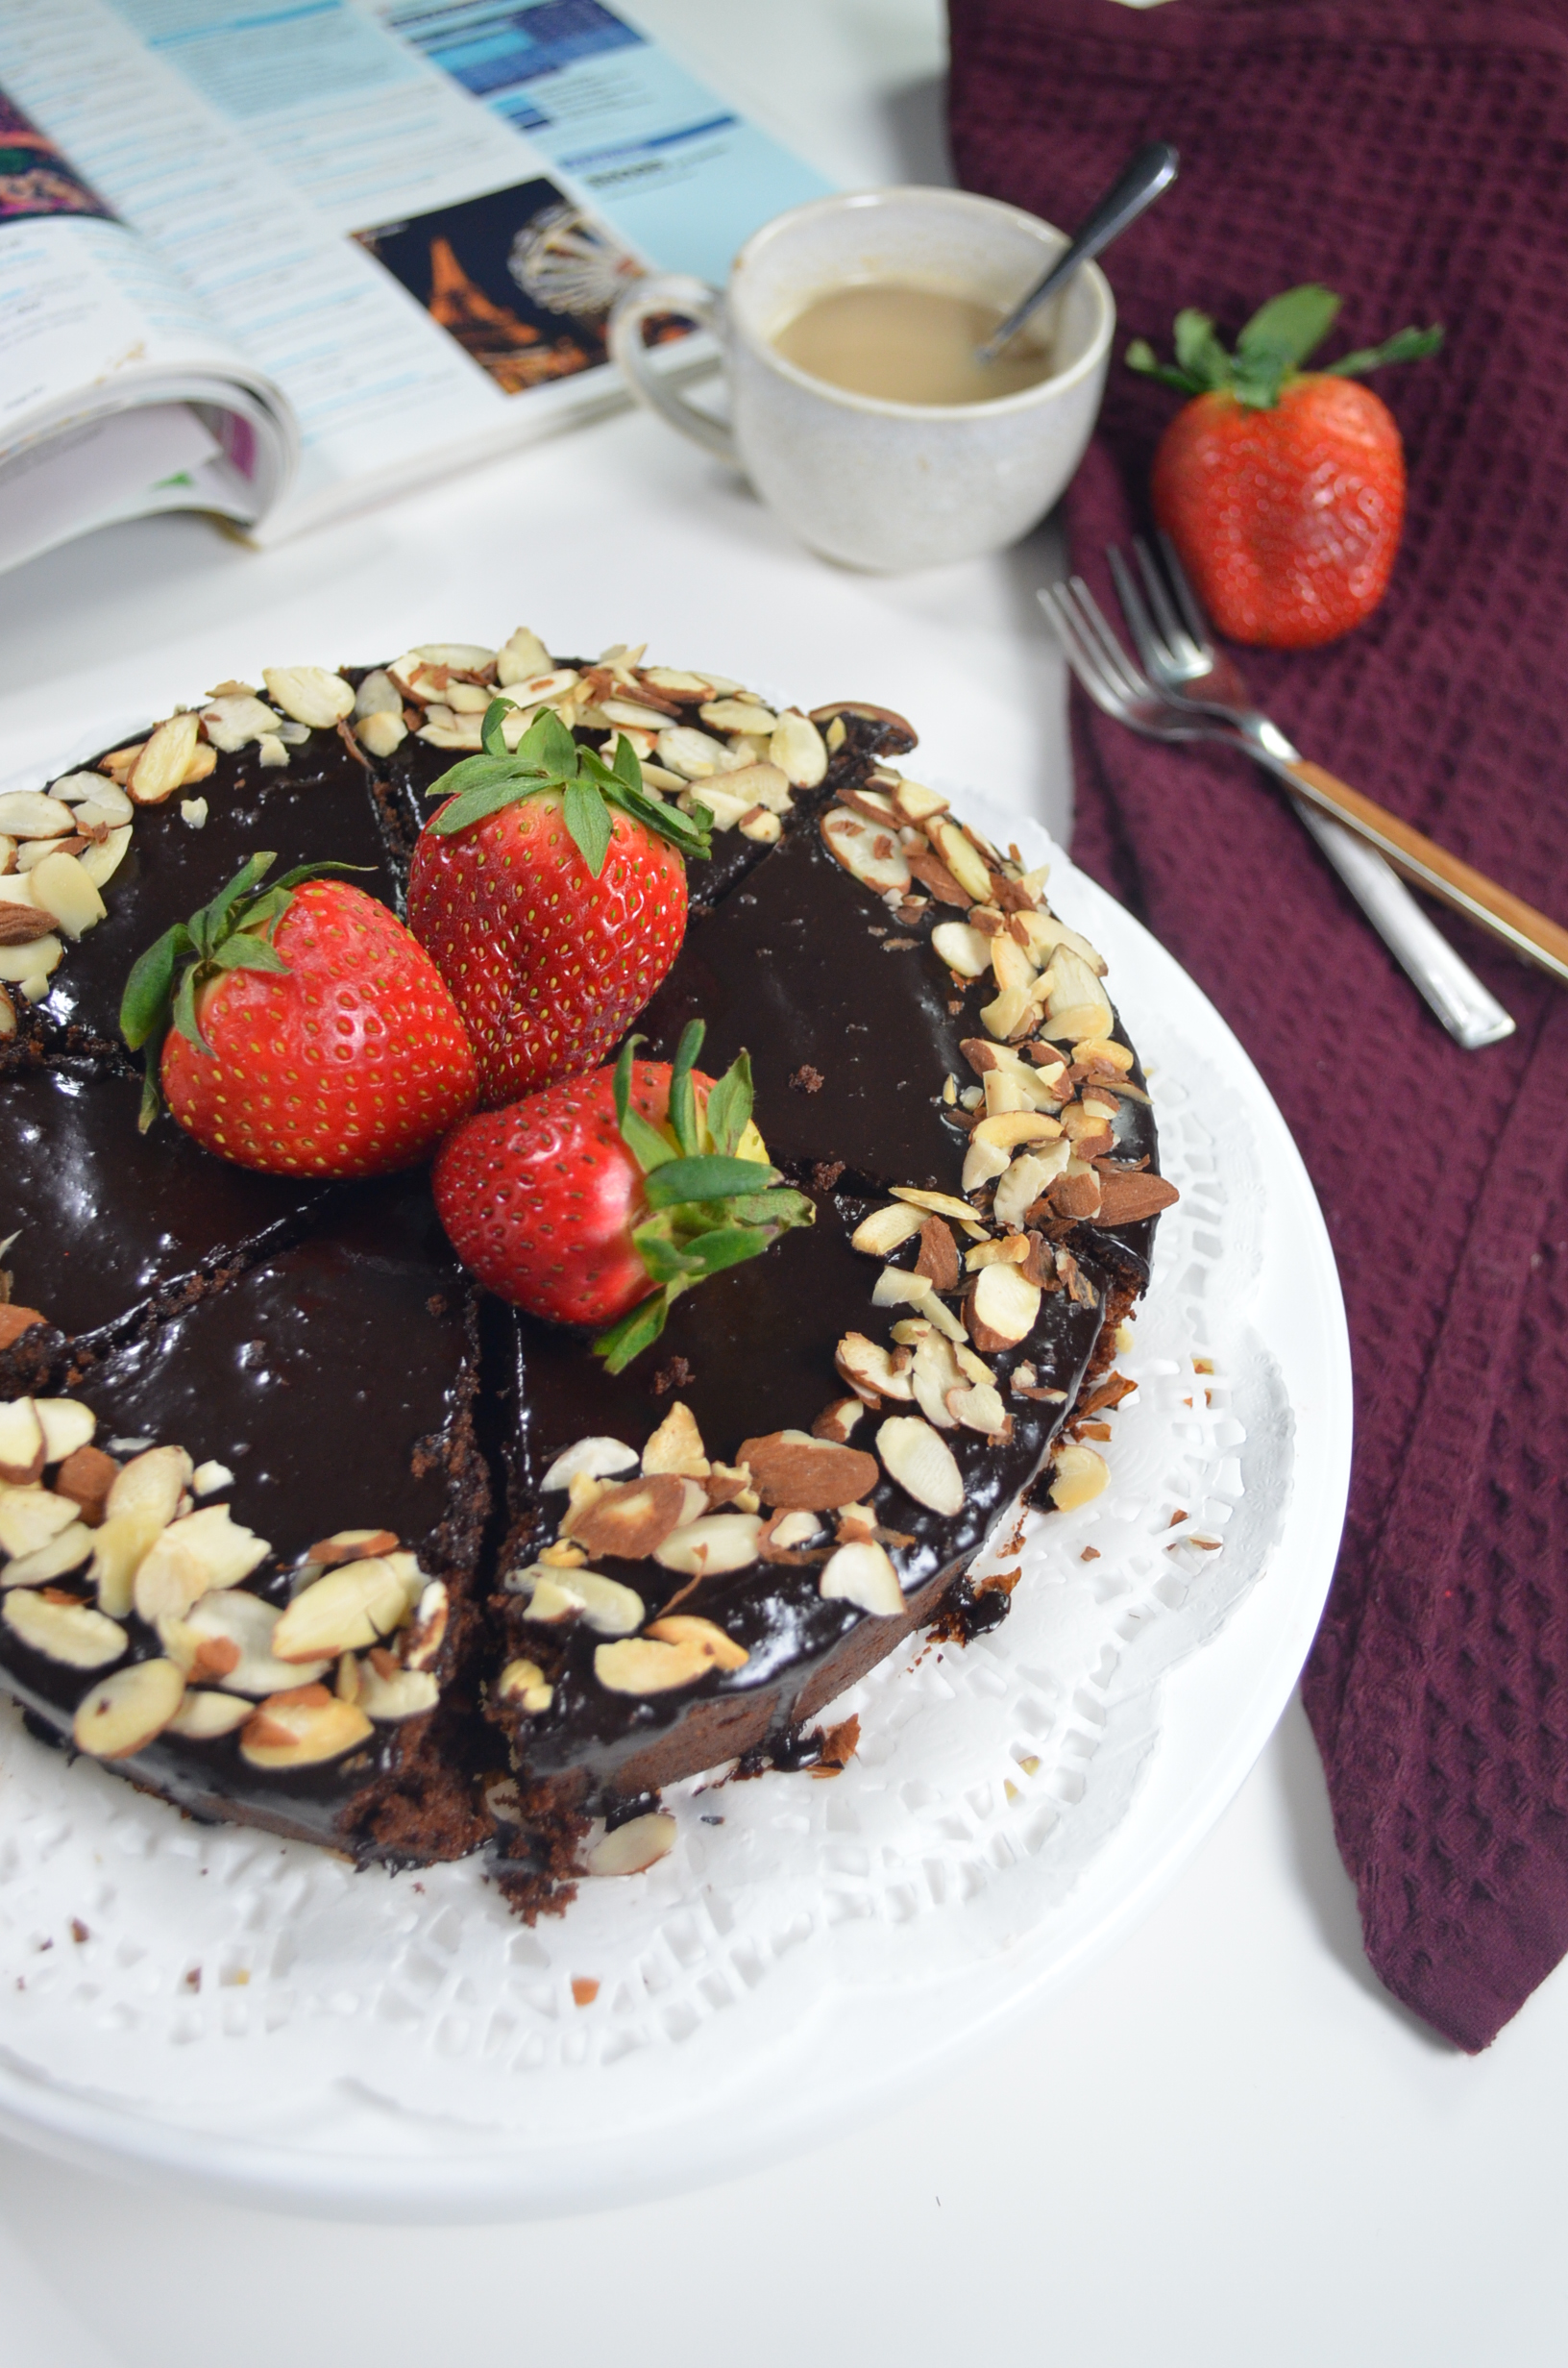 Ricotta Chocolate Almond Cake